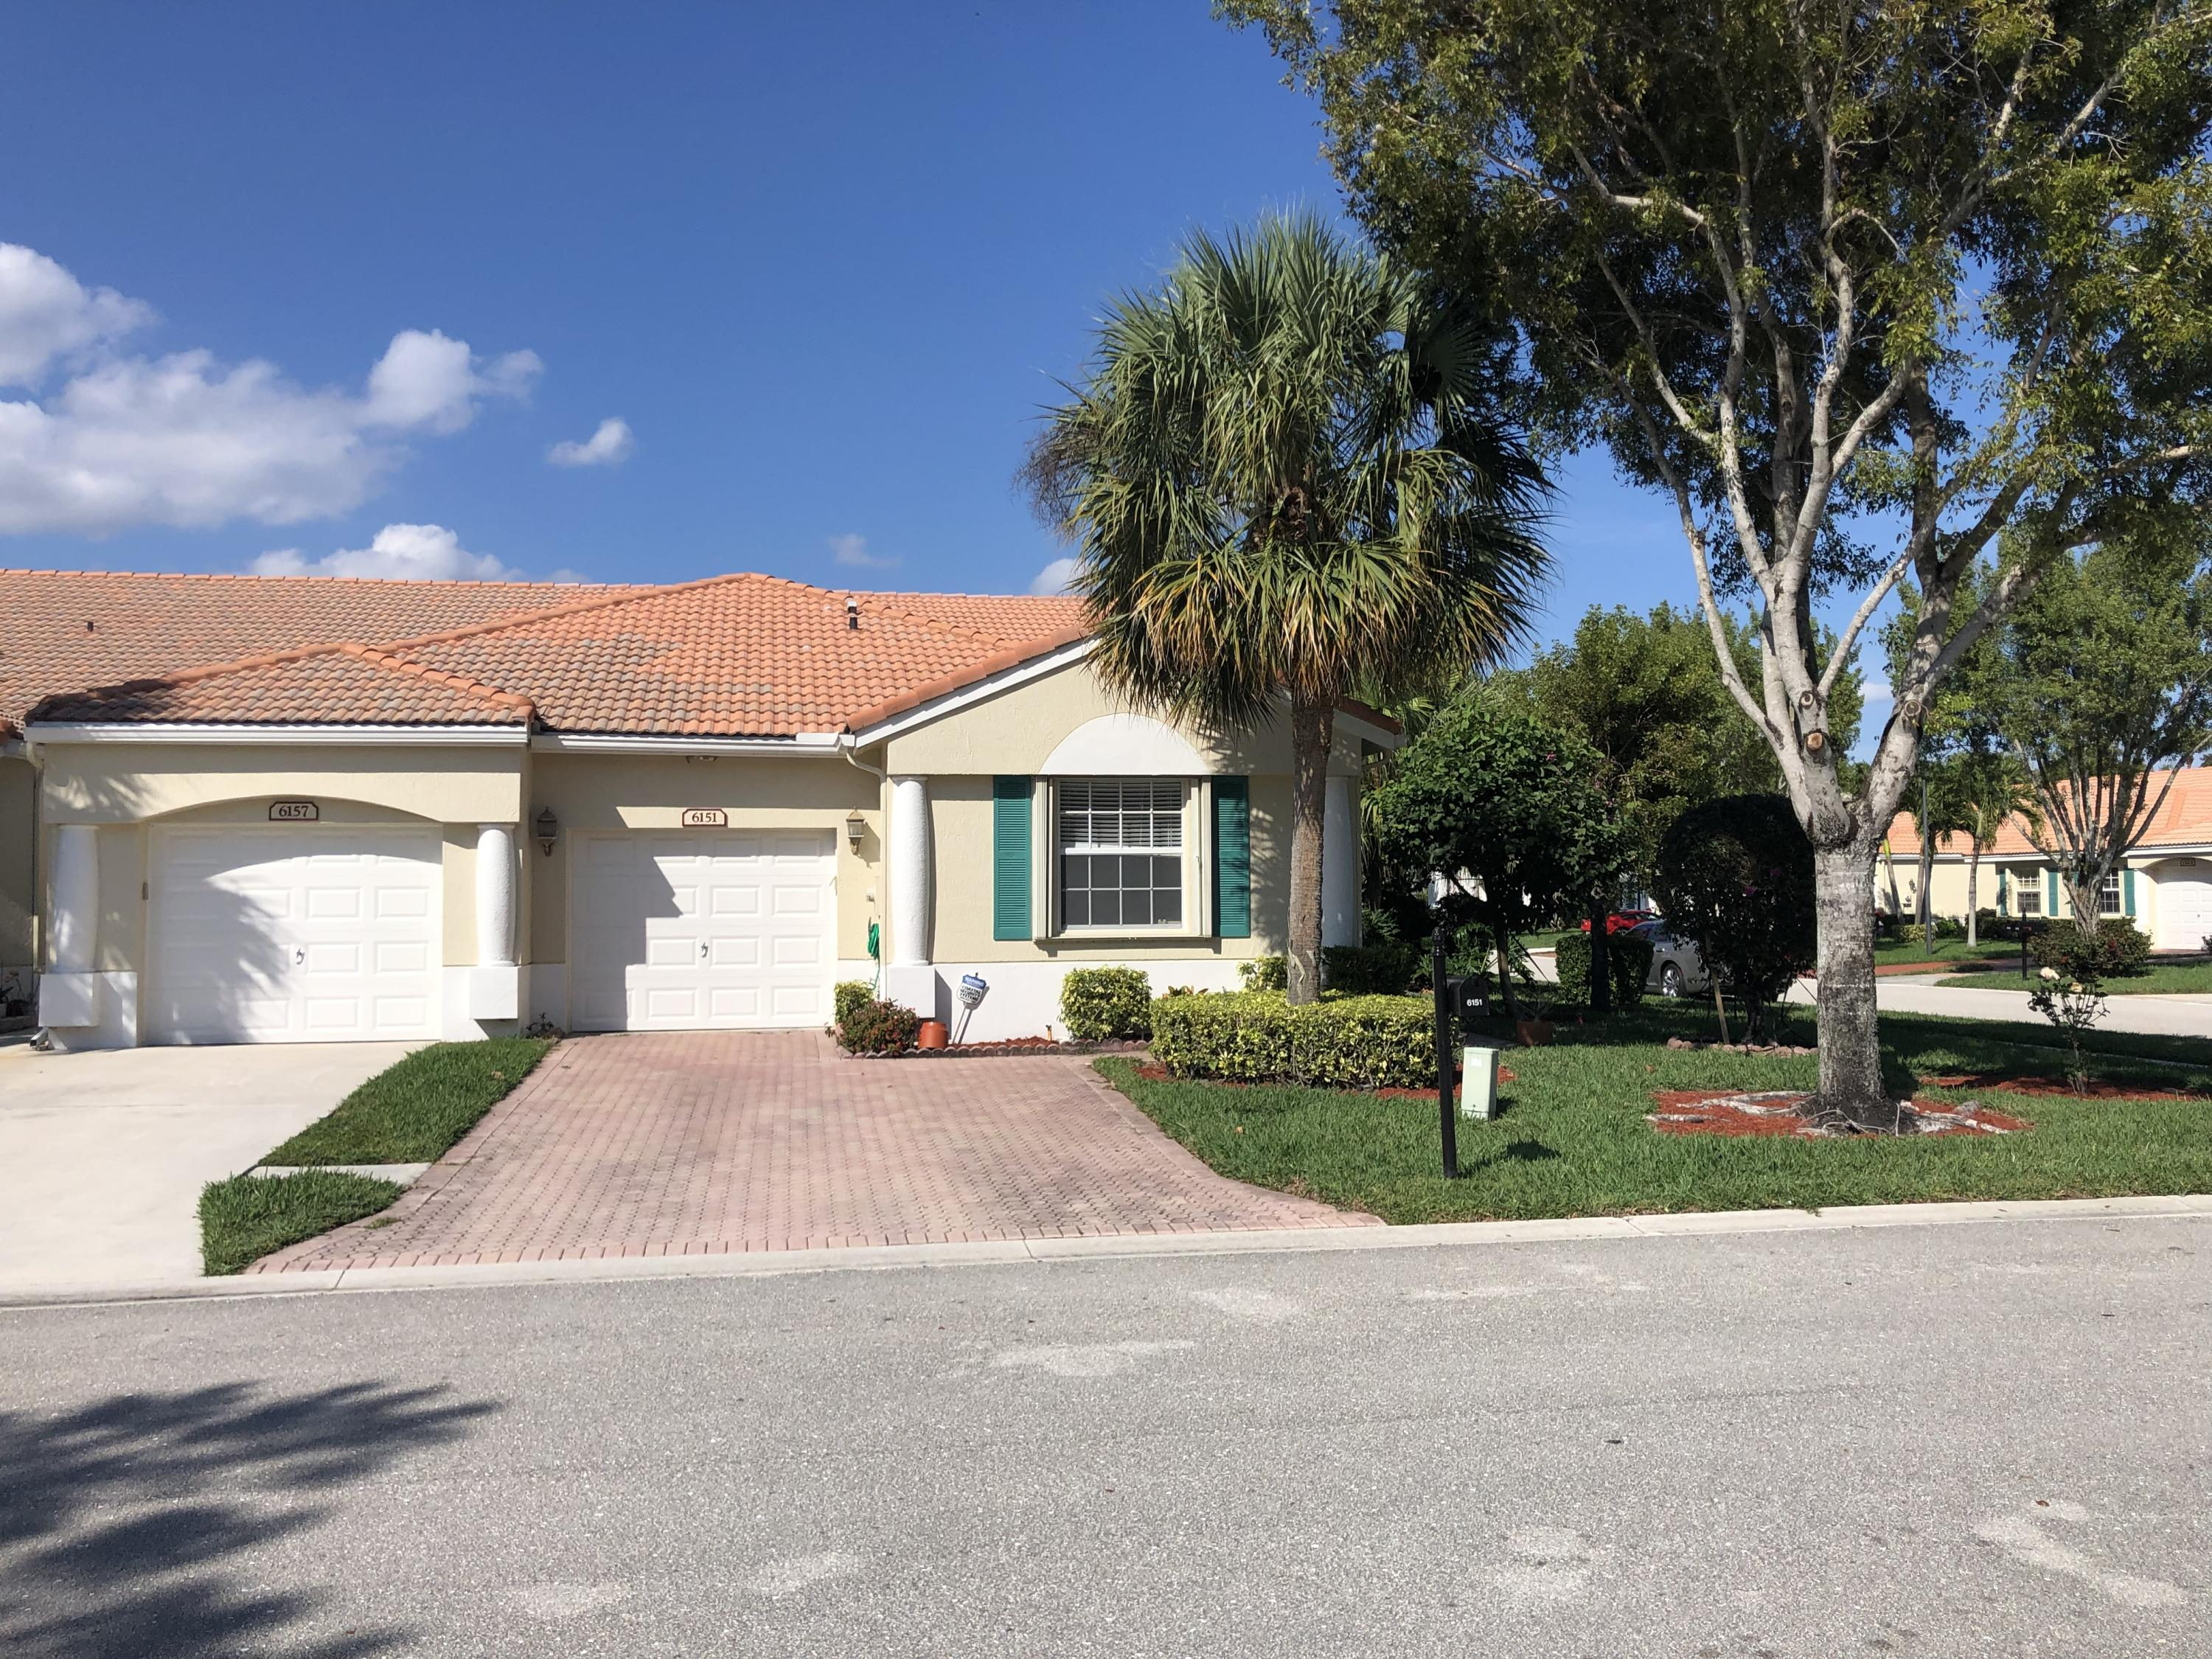 FLORAL LAKES PH 3 AND 4 home 6151 Heliconia Road Delray Beach FL 33484